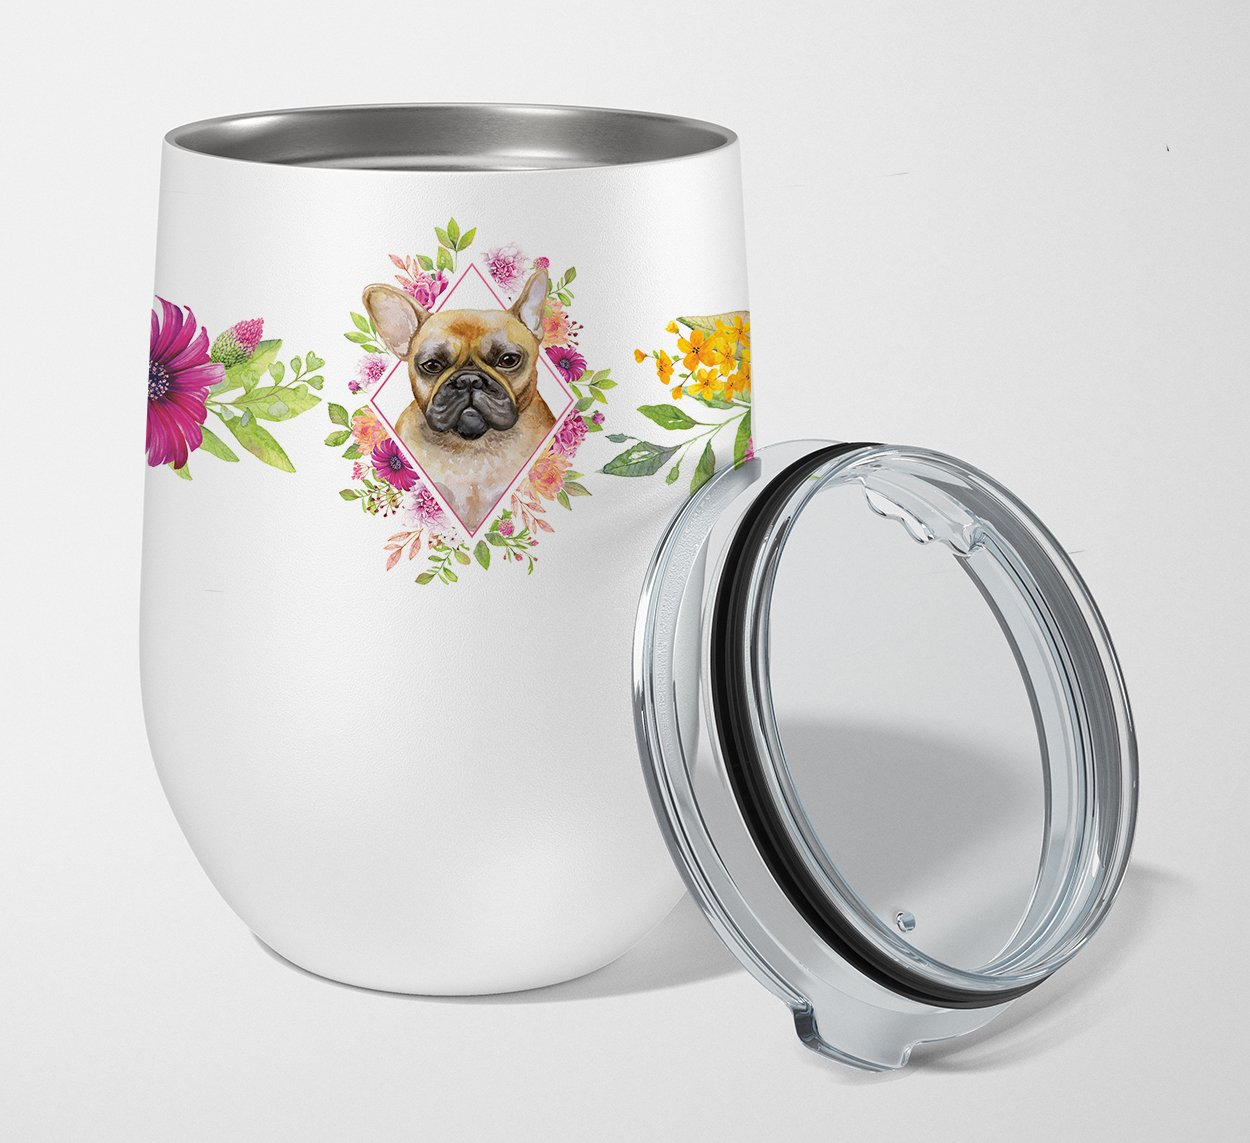 Fawn French Bulldog Pink Flowers Stainless Steel 12 oz Stemless Wine Glass CK4144TBL12 by Caroline's Treasures